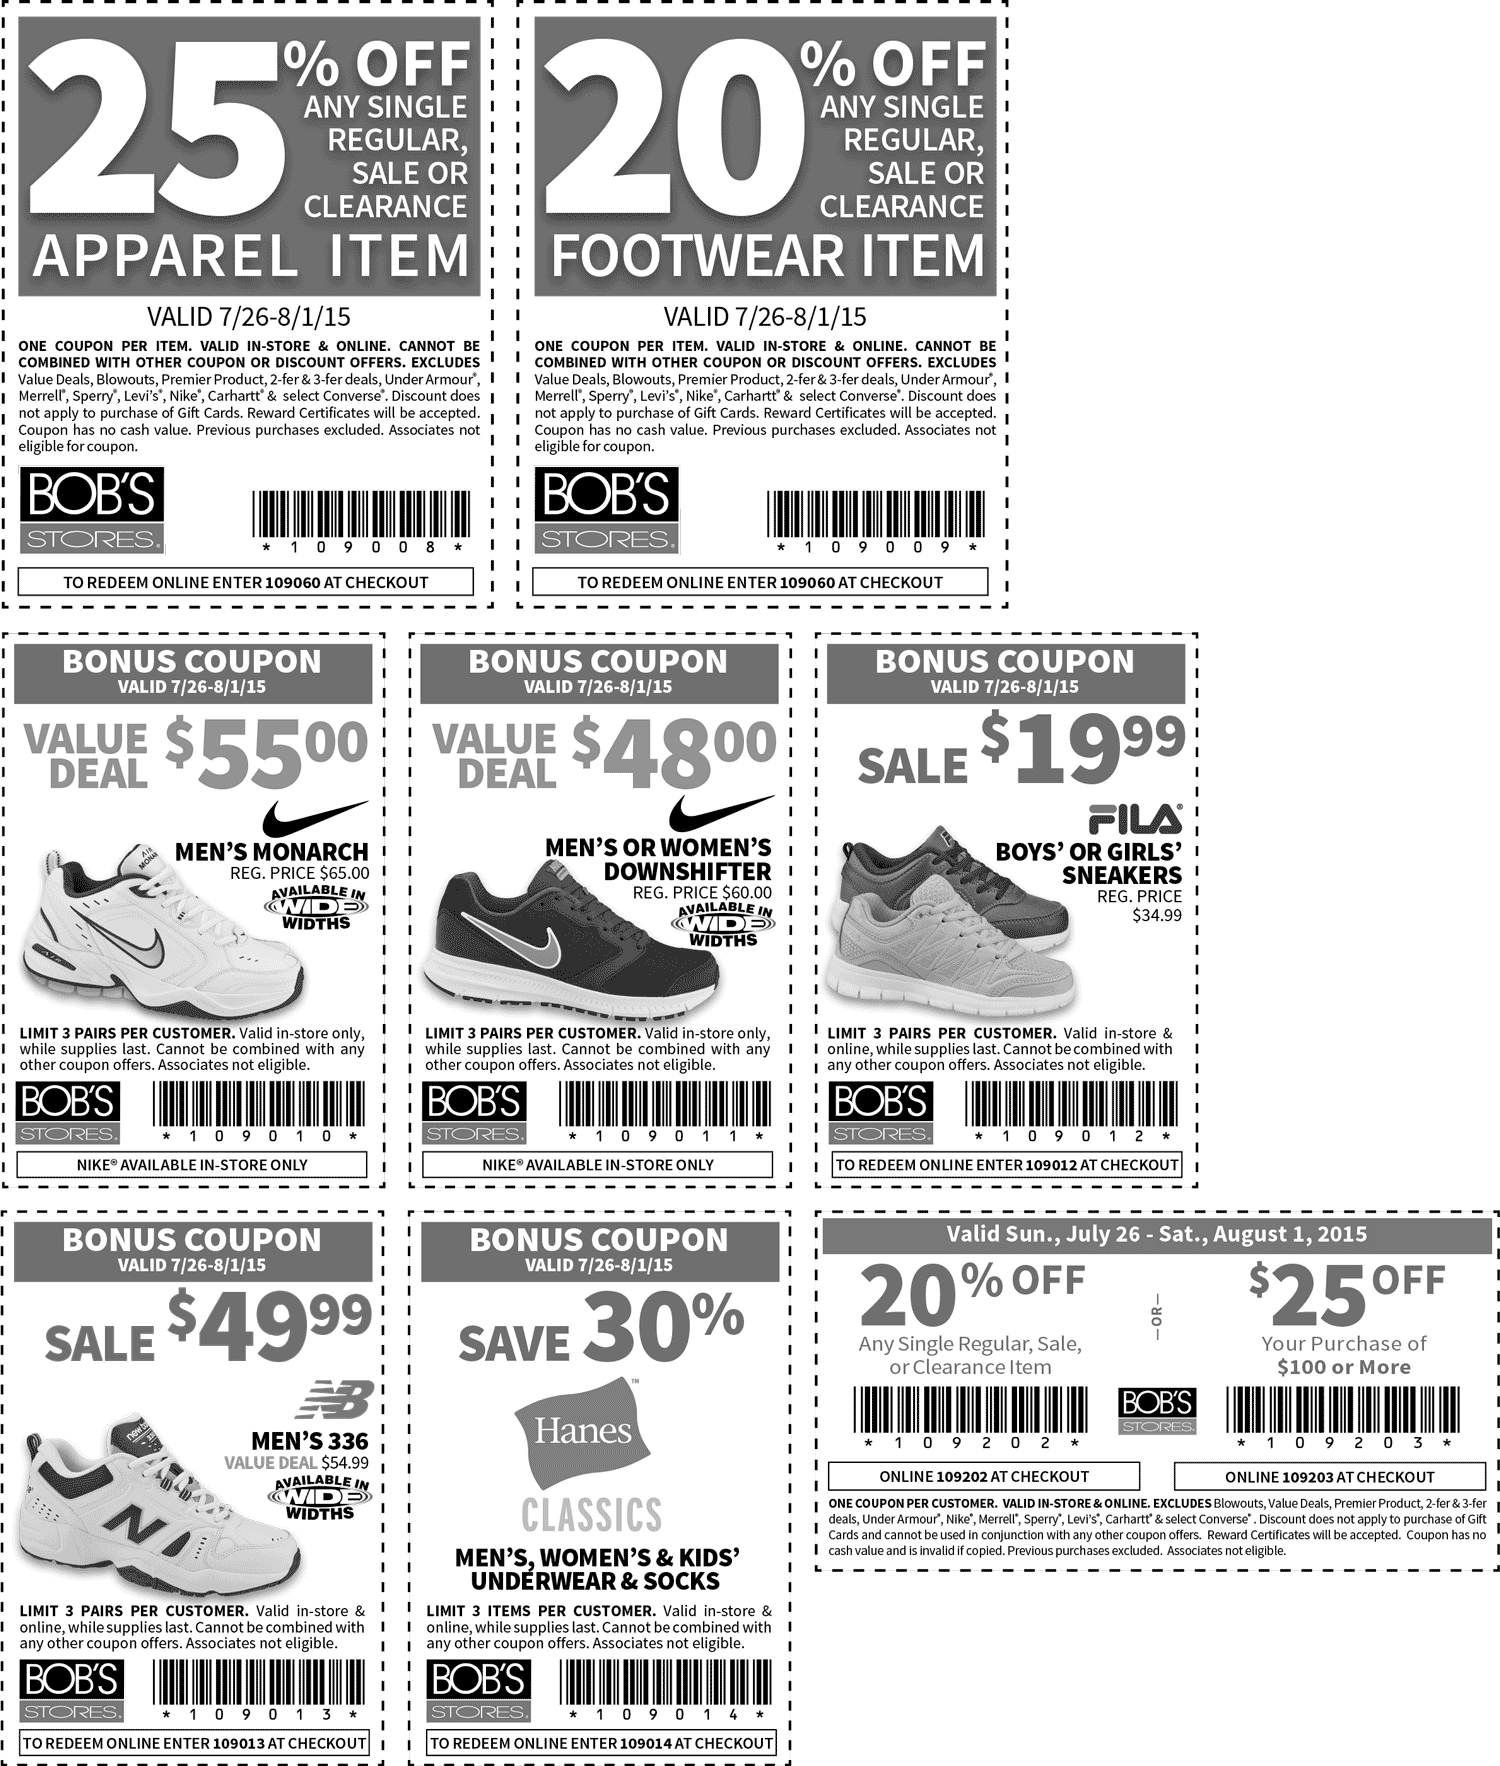 Bobs Stores Coupon December 2016 20-25% off & more at Bobs Stores, or online via promo code 109060